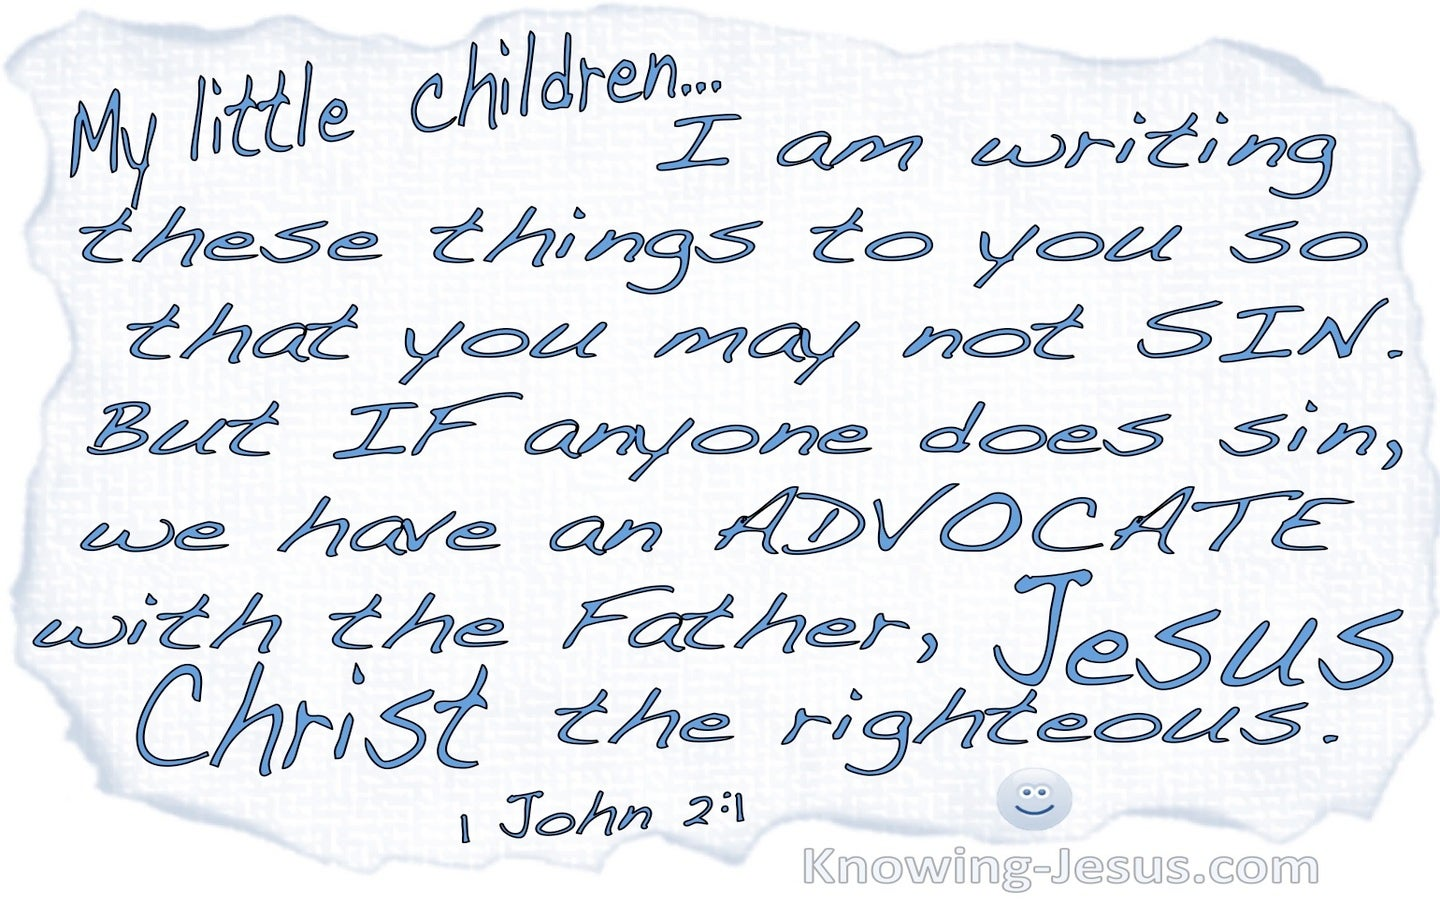 1 John 2:1 We Have An Advocate With The Father (blue)